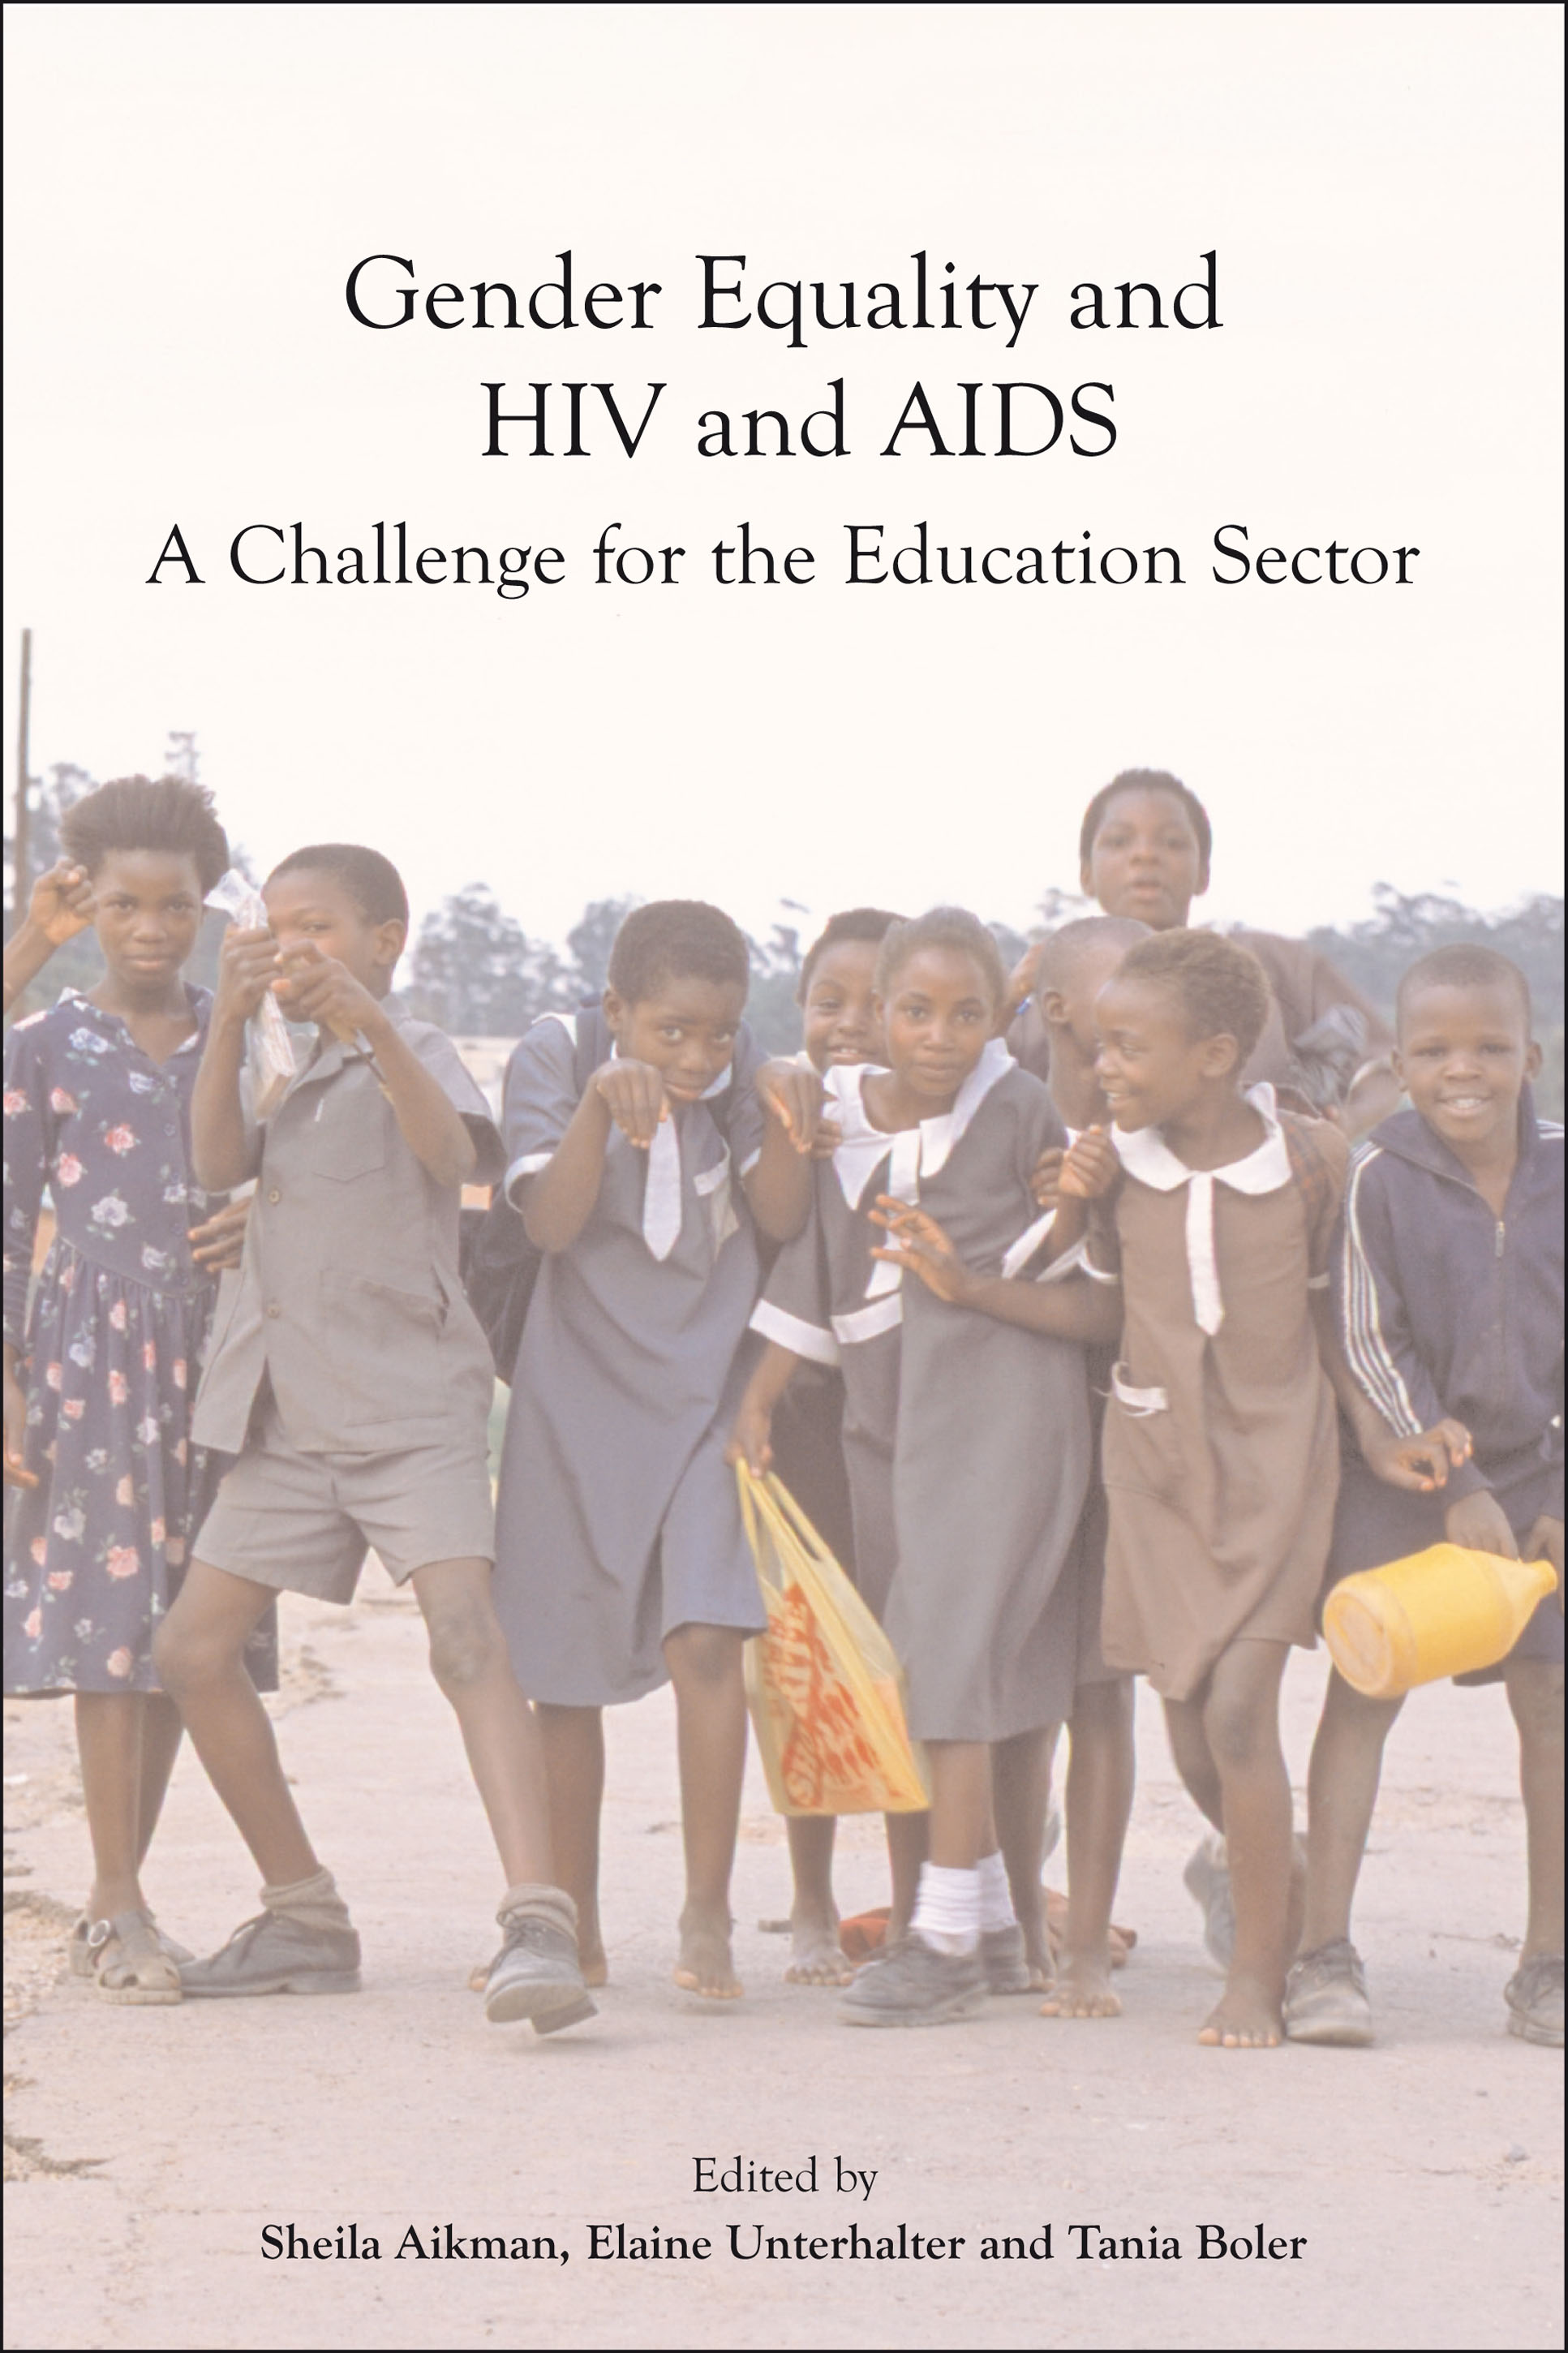 Gender Equality, HIV, and AIDS